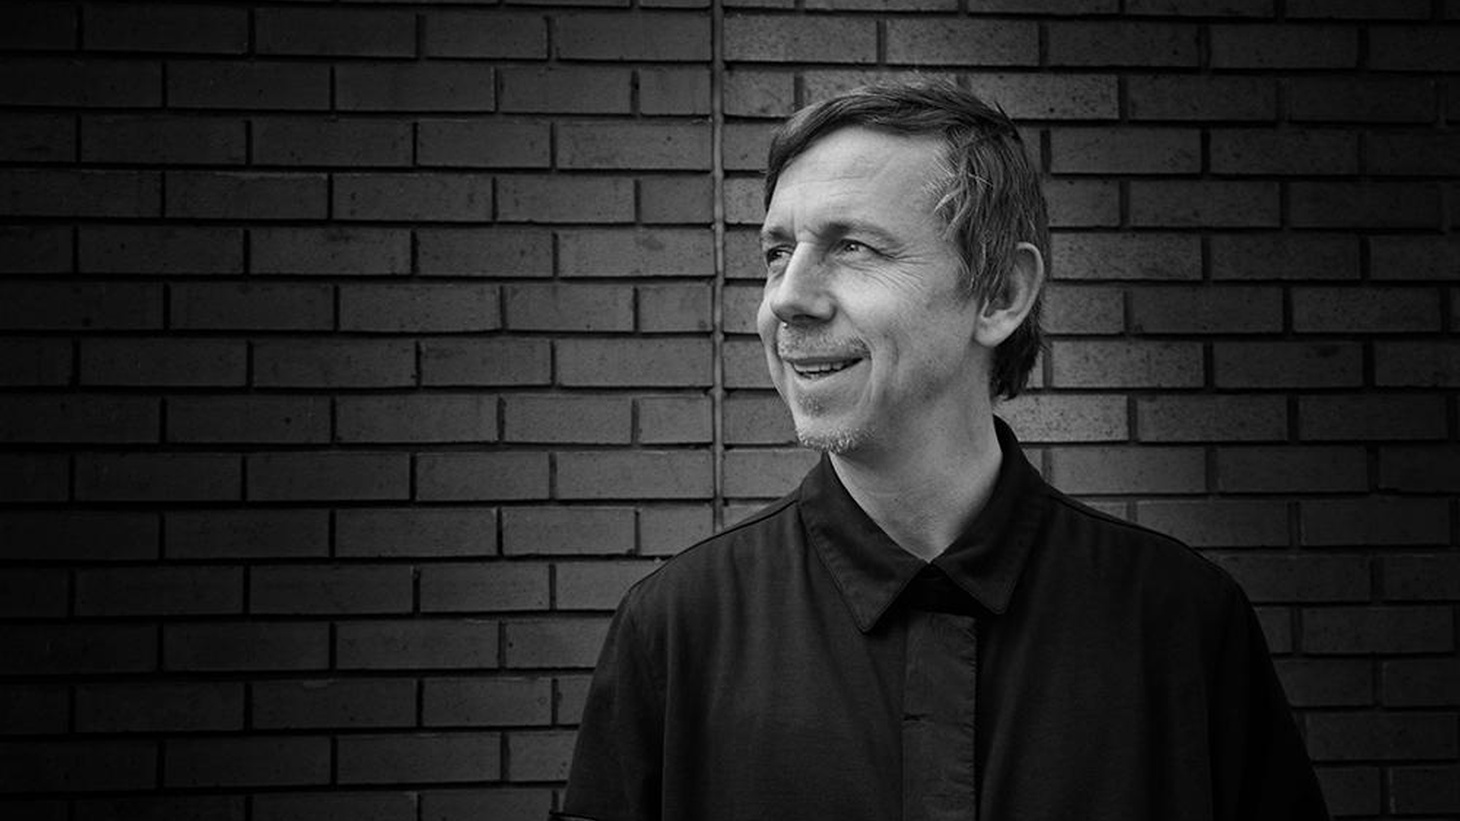 Influential BBC DJ Gilles Peterson made a rare West Coast trip recently for LA and SF club gigs and a special engagement at Sonos Studios in Hollywood, where he staged a live version of his acclaimed BBC6 radio show Worldwide for a packed house.